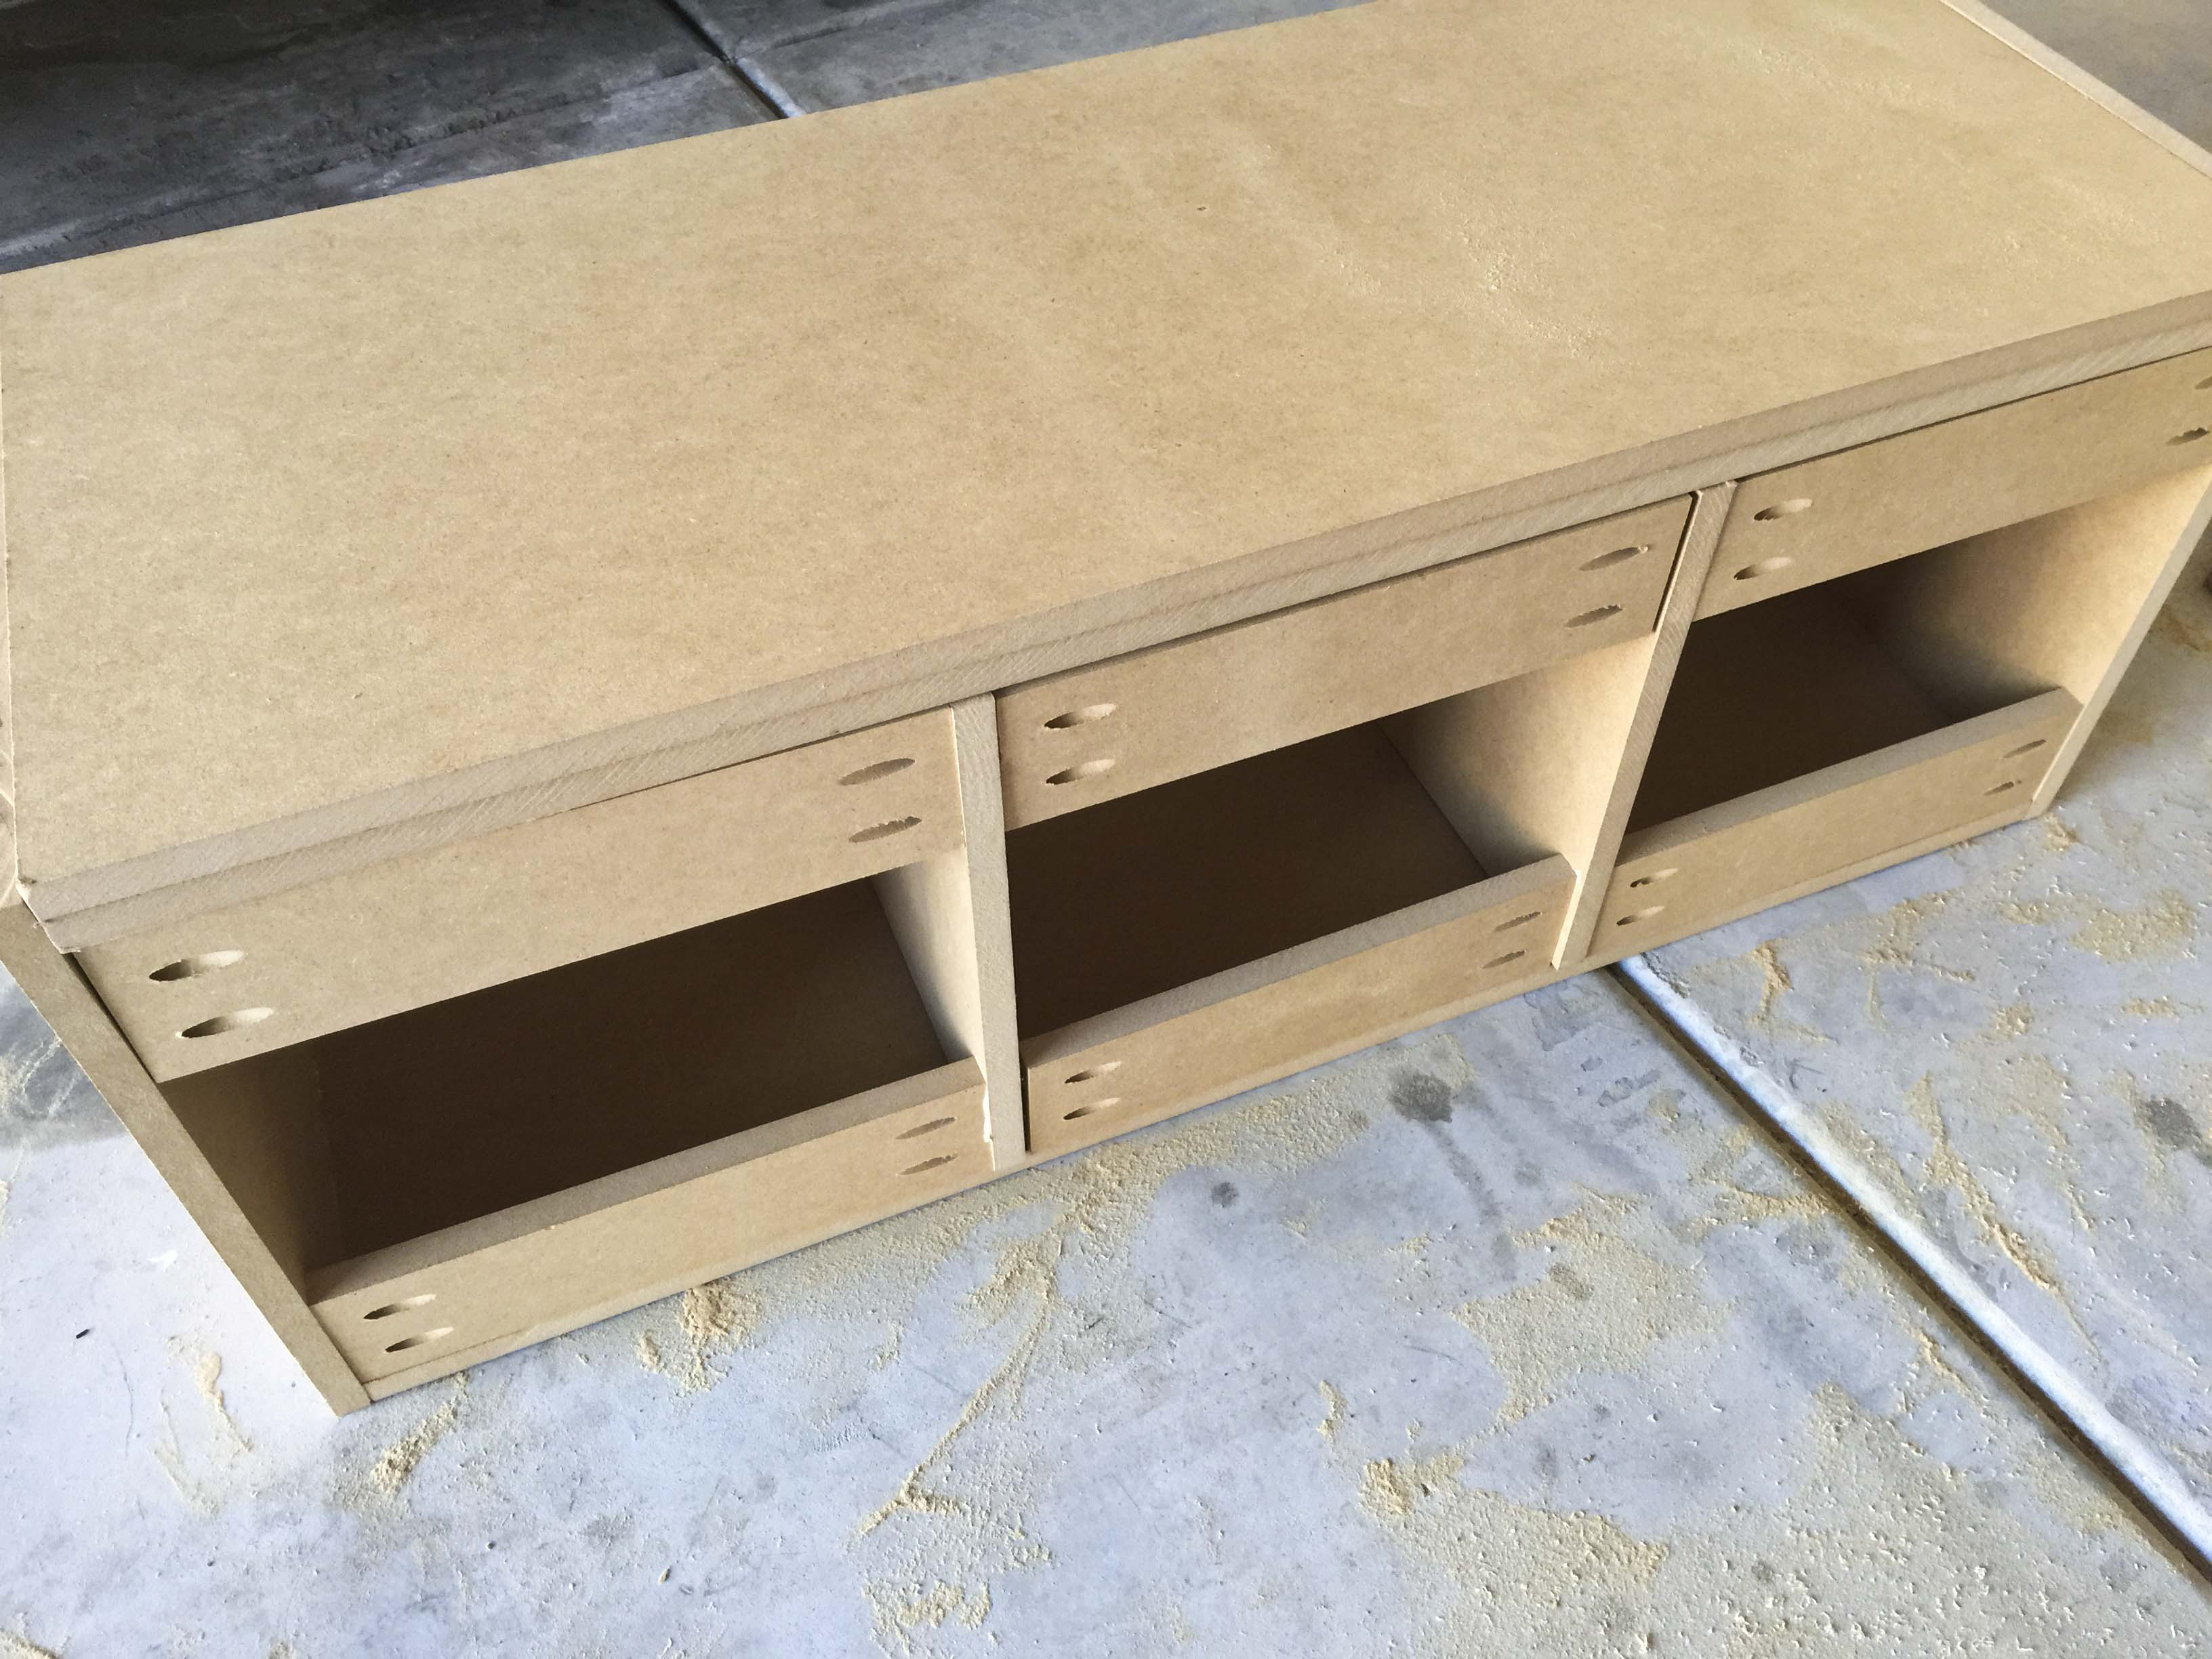 Building a mudroom bench - I Drilled Pocket Holes On The Top And Bottom Pieces And Attached Them To The Sides So That The Holes Would Not Be Visible On The Sides